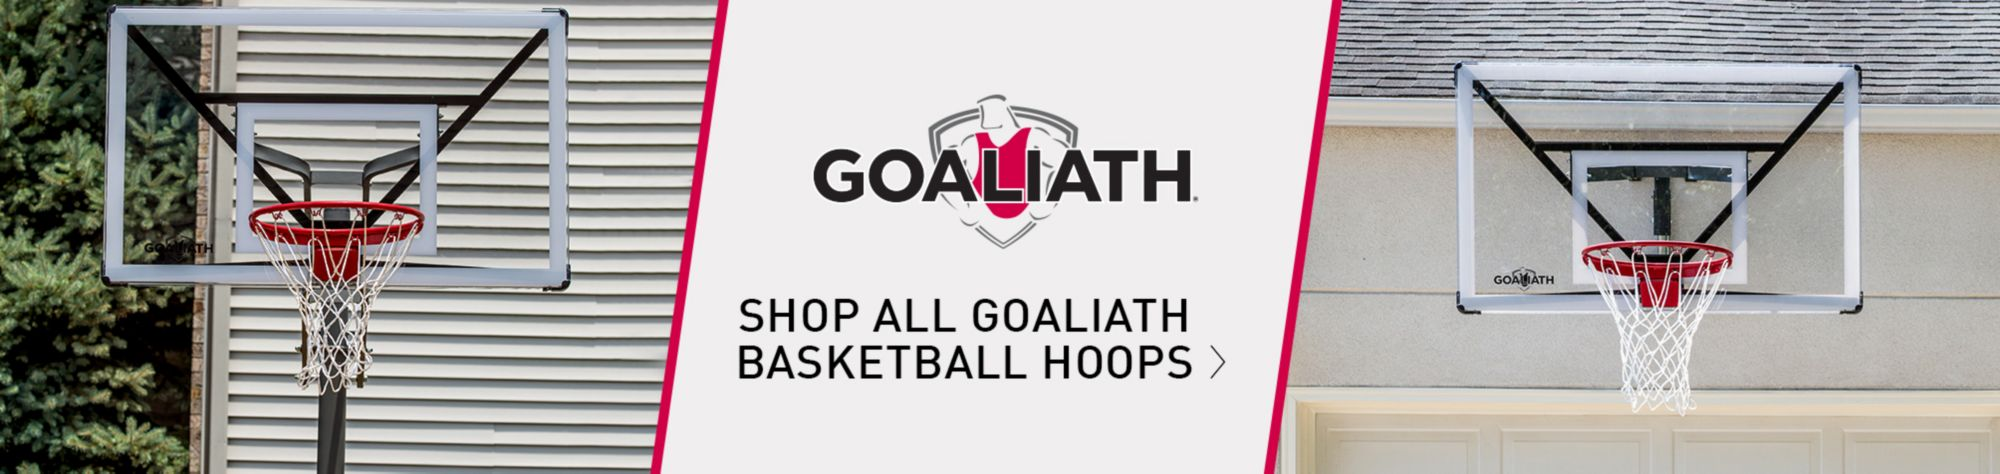 Shop All Goaliath Basketball Hoops